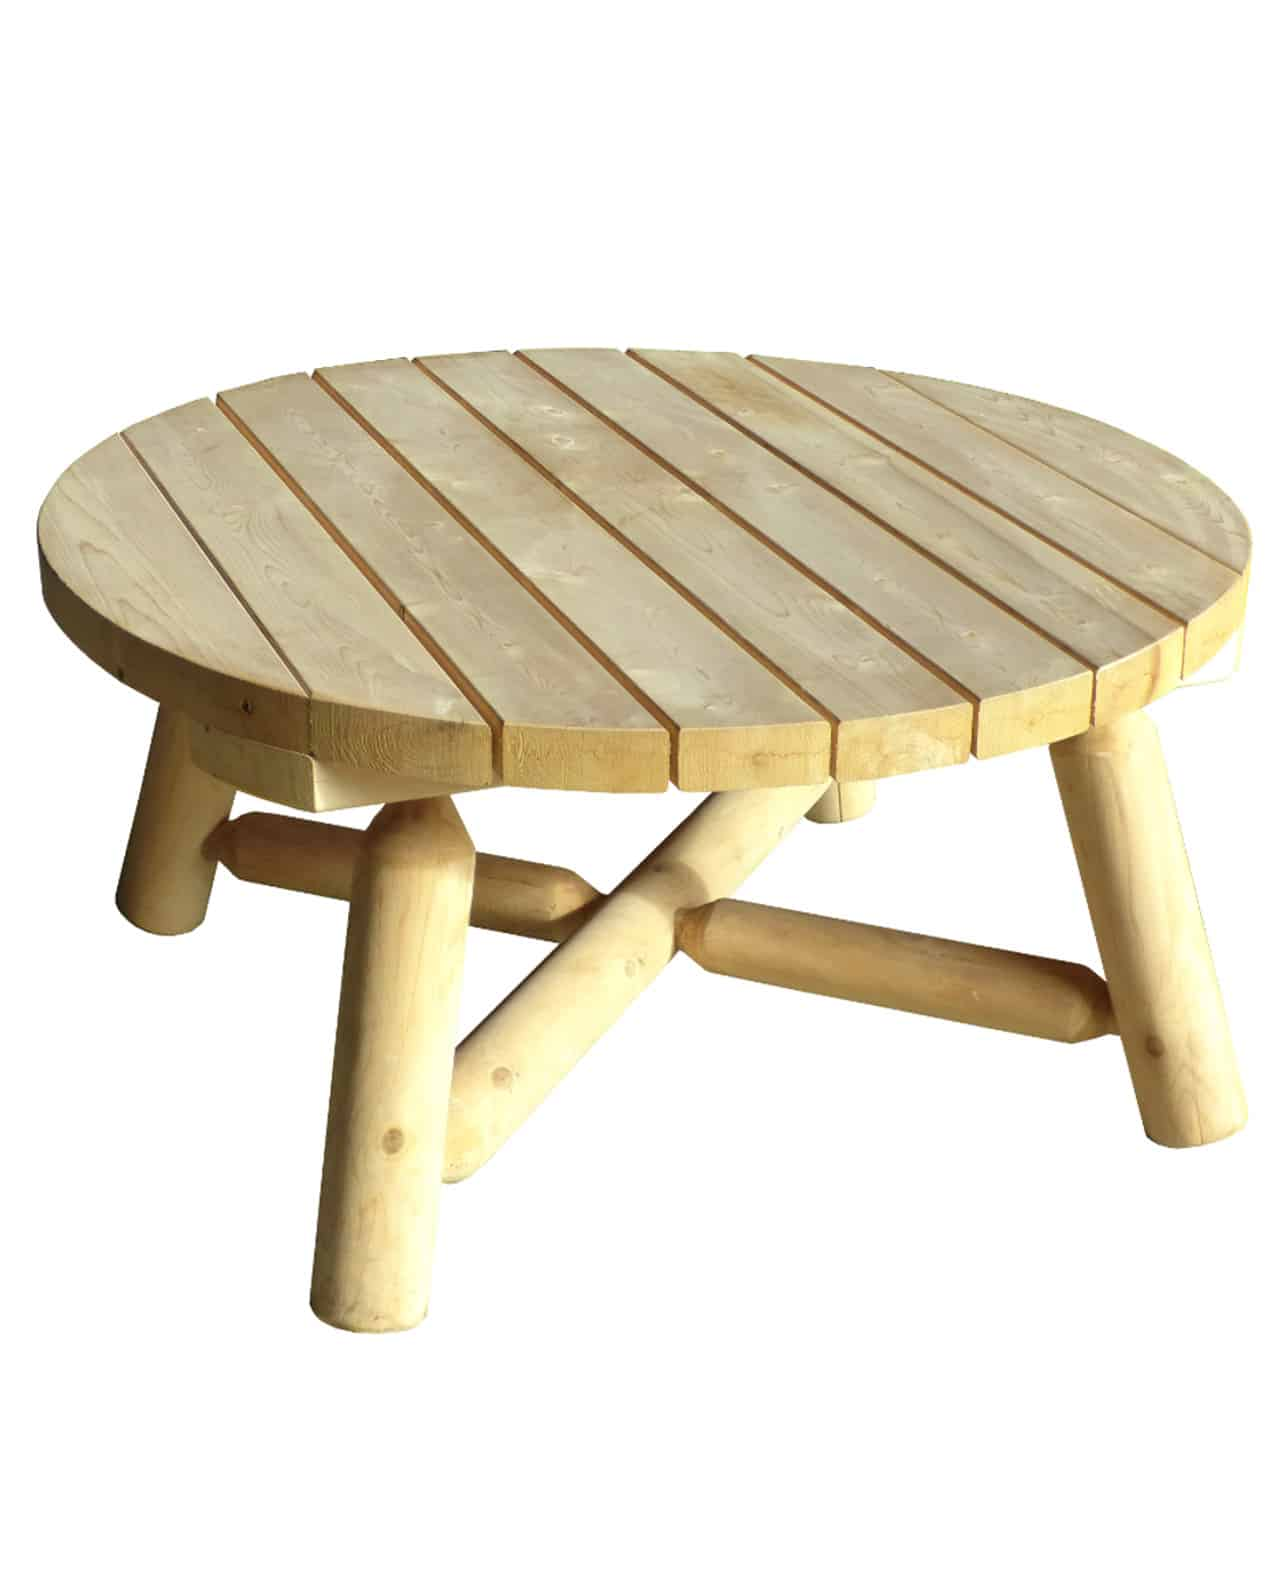 Table basse de jardin en bois de c dre blanc grand mod le for Modele de jardin